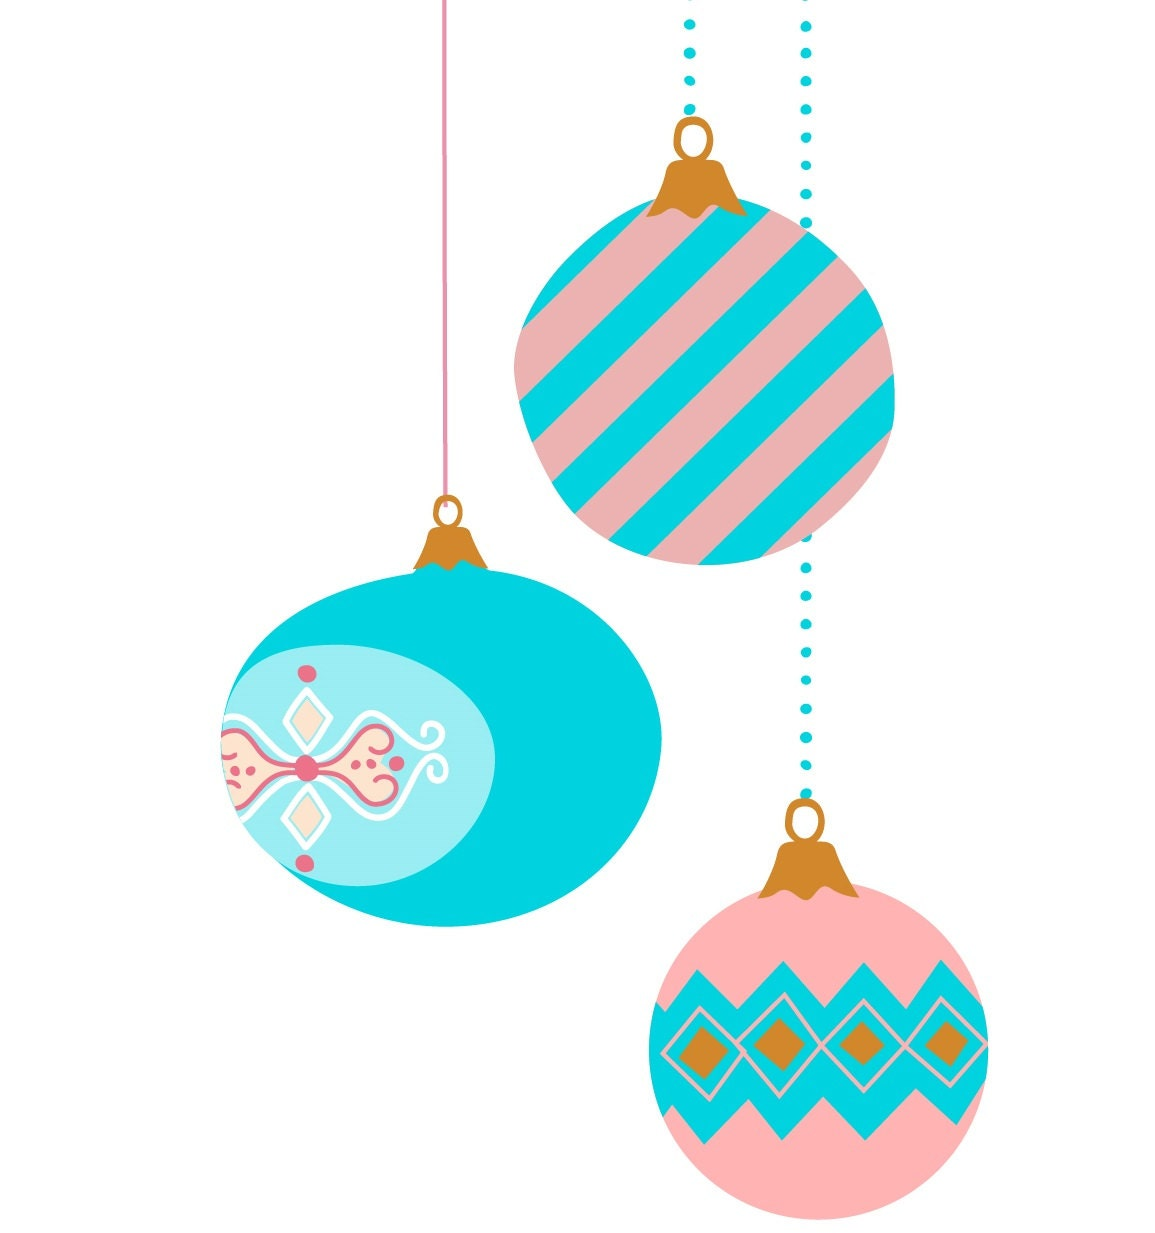 9 vintage Christmas ornament clip art pastel color retro